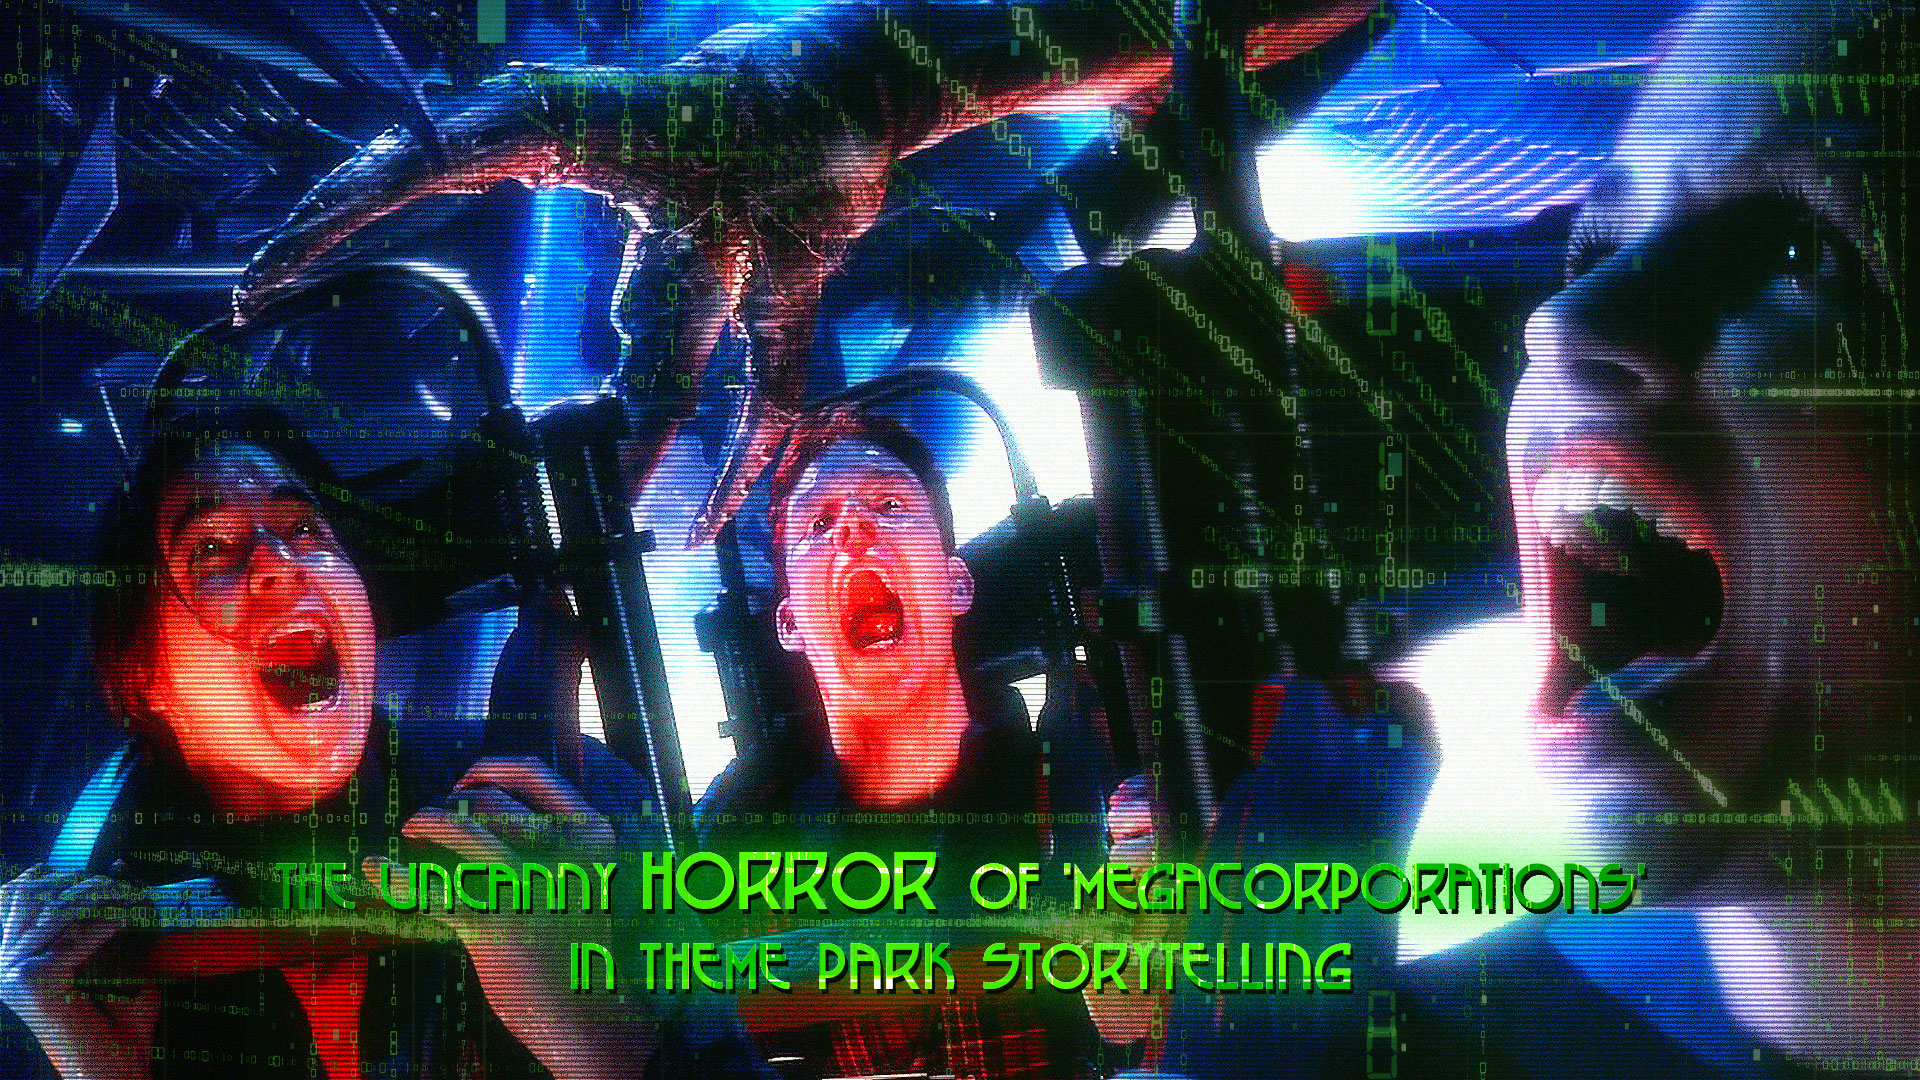 HAUNTVAULT Article: The Uncanny Horror of 'Megacorporations' in Theme Park Storytelling